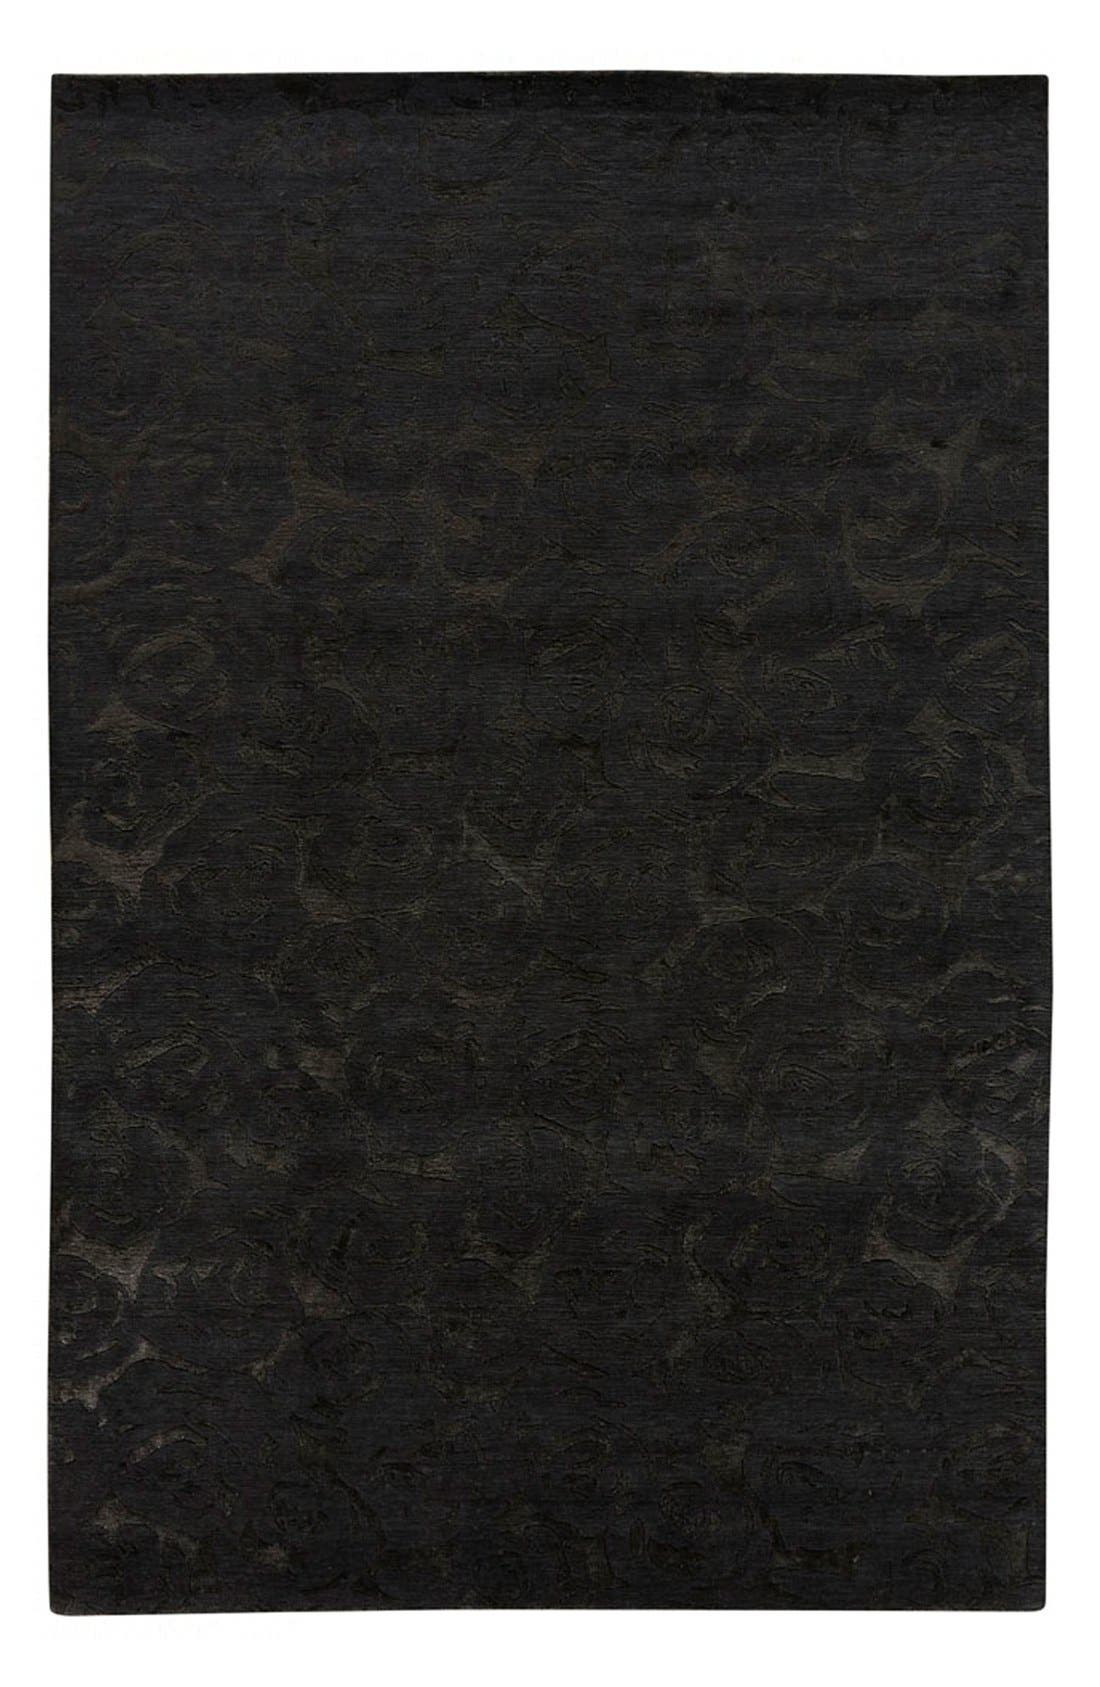 'noho' premium wool blend rug,                             Main thumbnail 1, color,                             Black